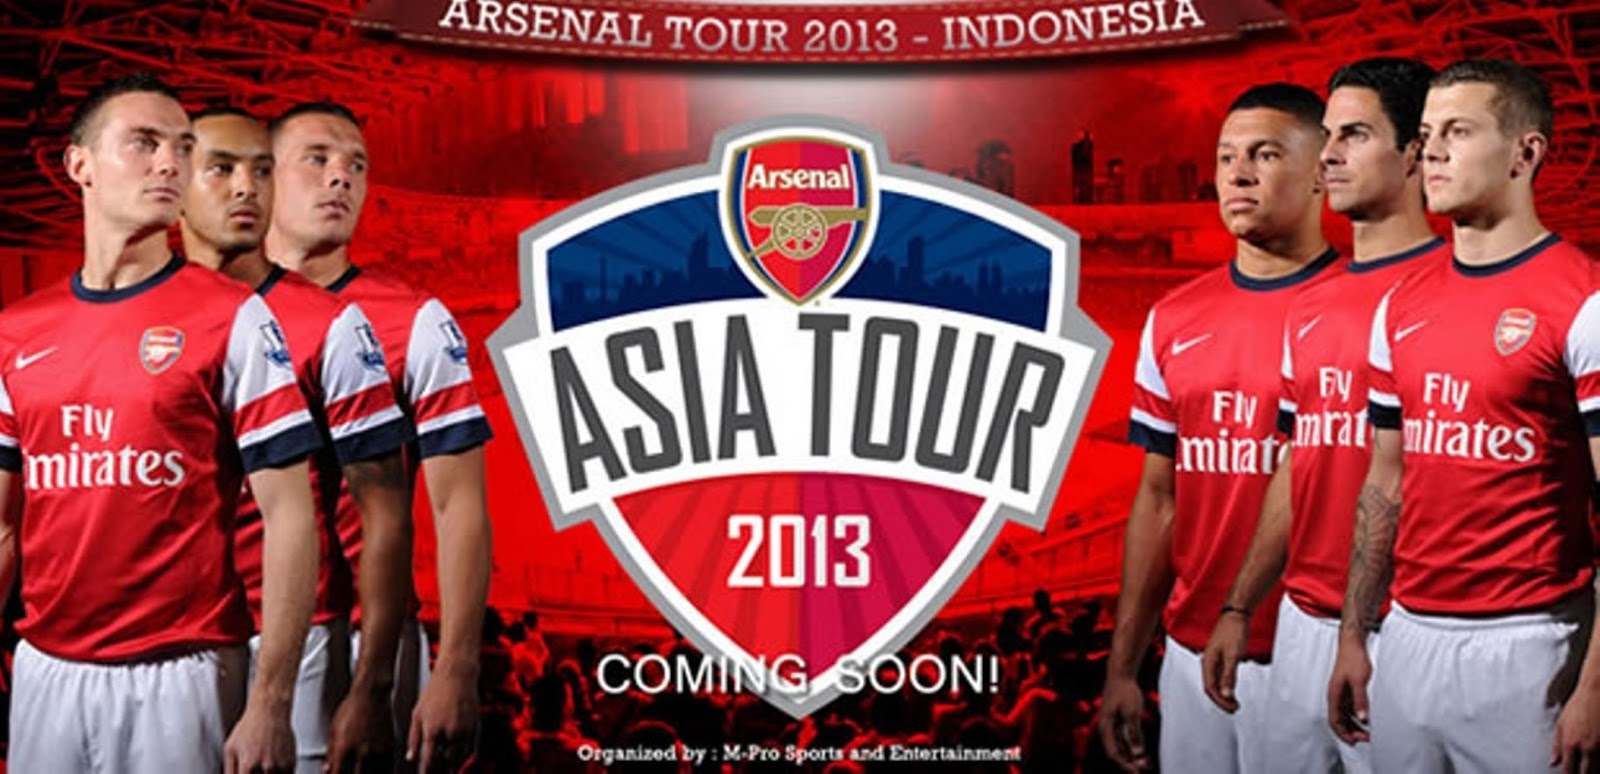 Arsenal Tour Indonesia 2013